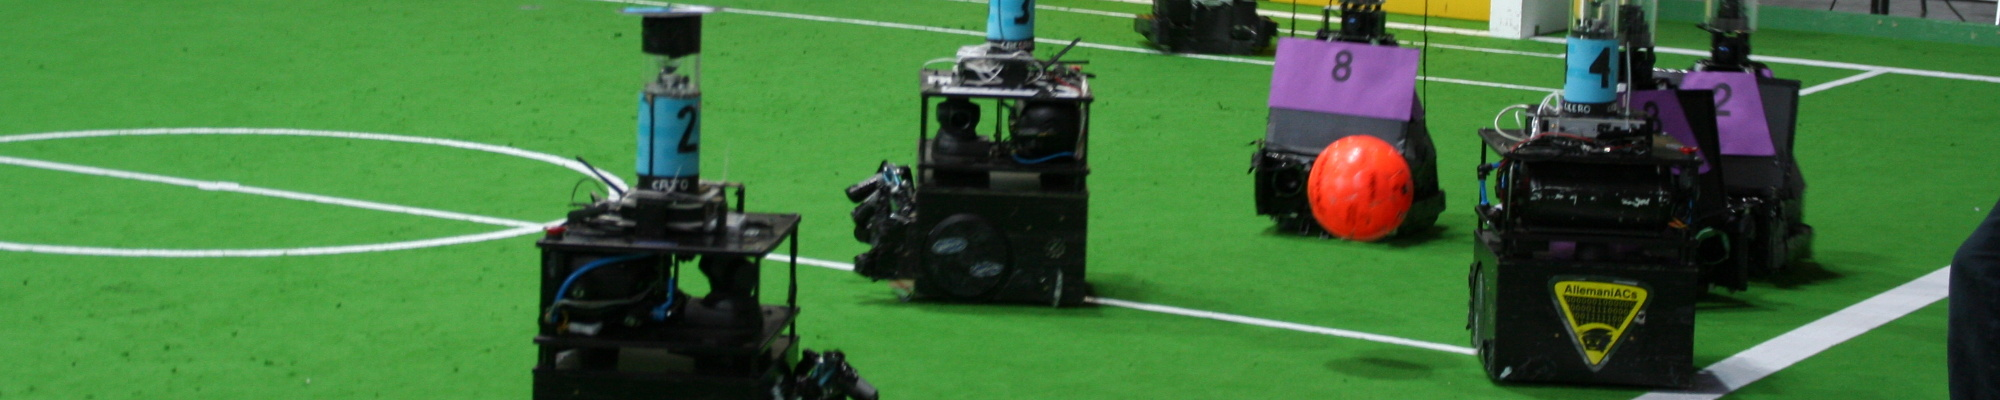 AllemaniACs' Caesar as a soccer robot before moving on to RoboCup@Home (RoboCup 2006, Bremen, Germany)